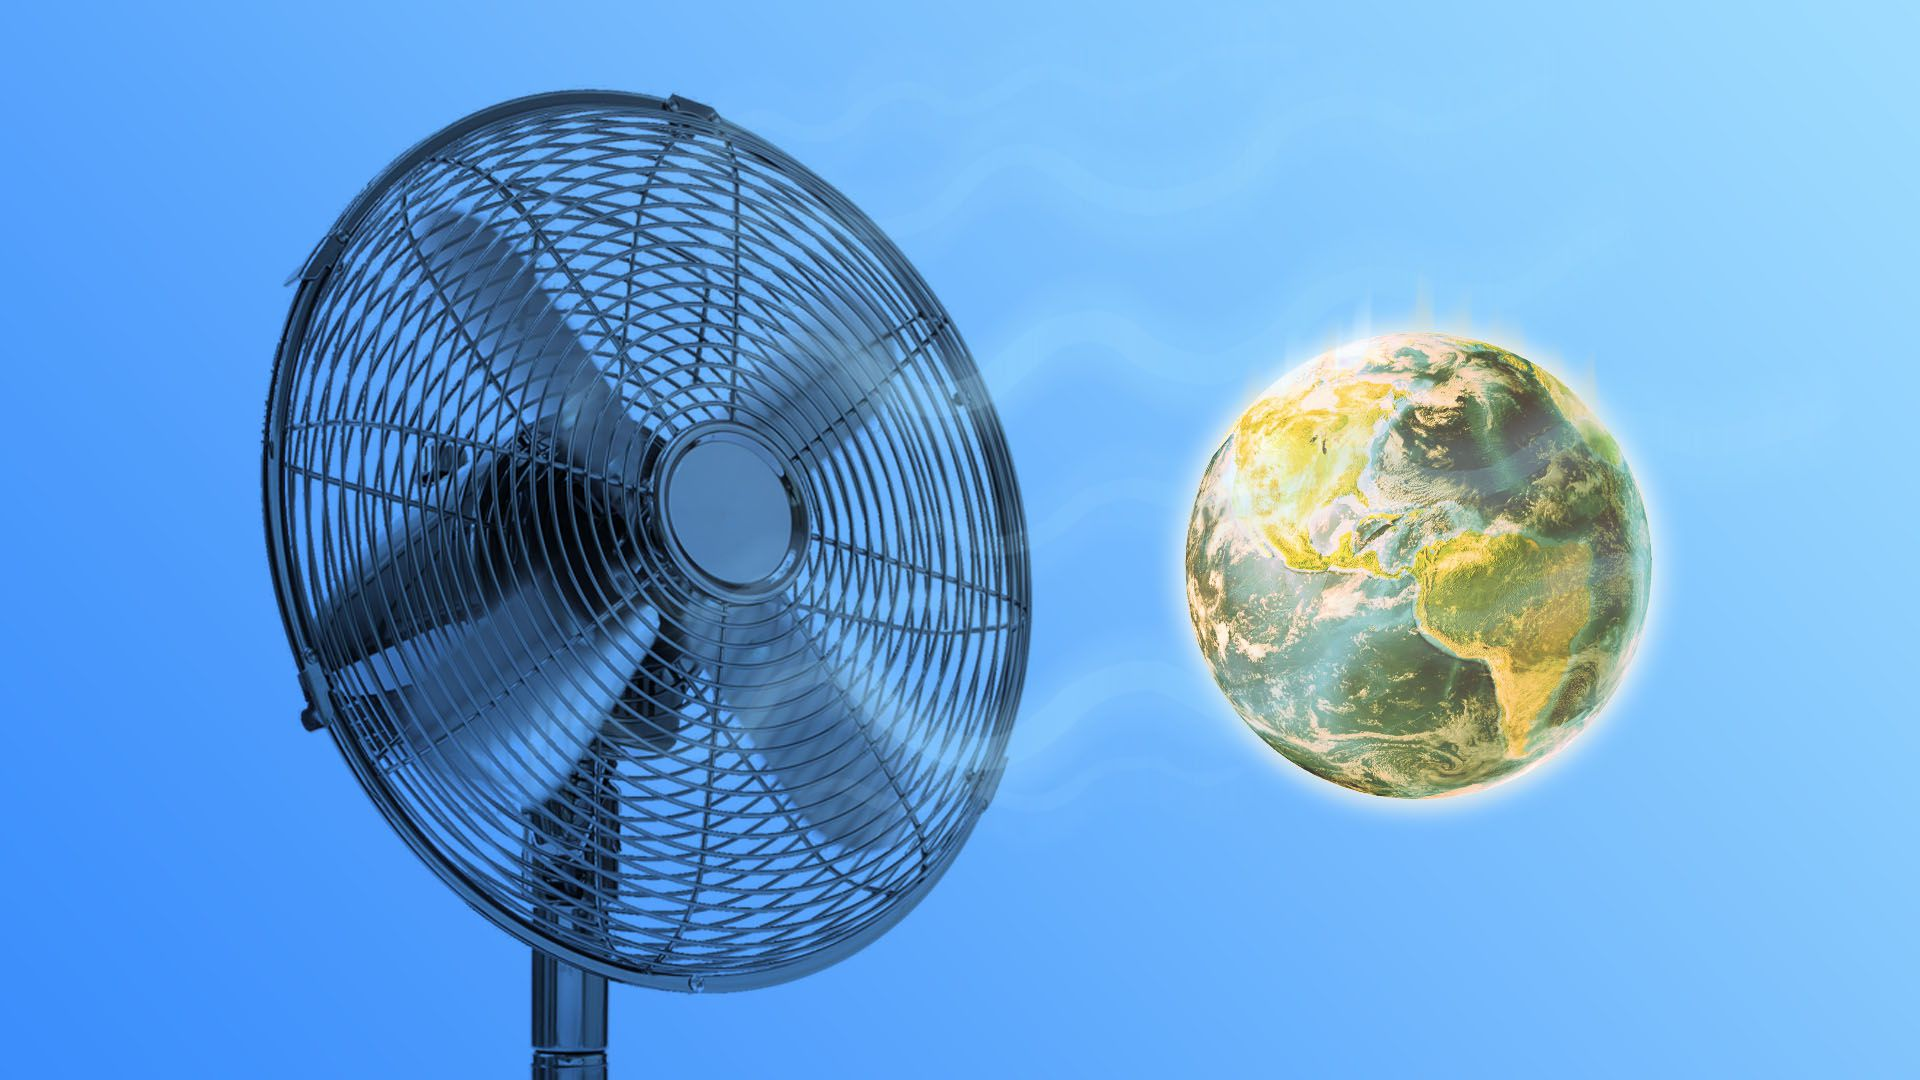 Illustration of a giant electric fan cooling a warming planet